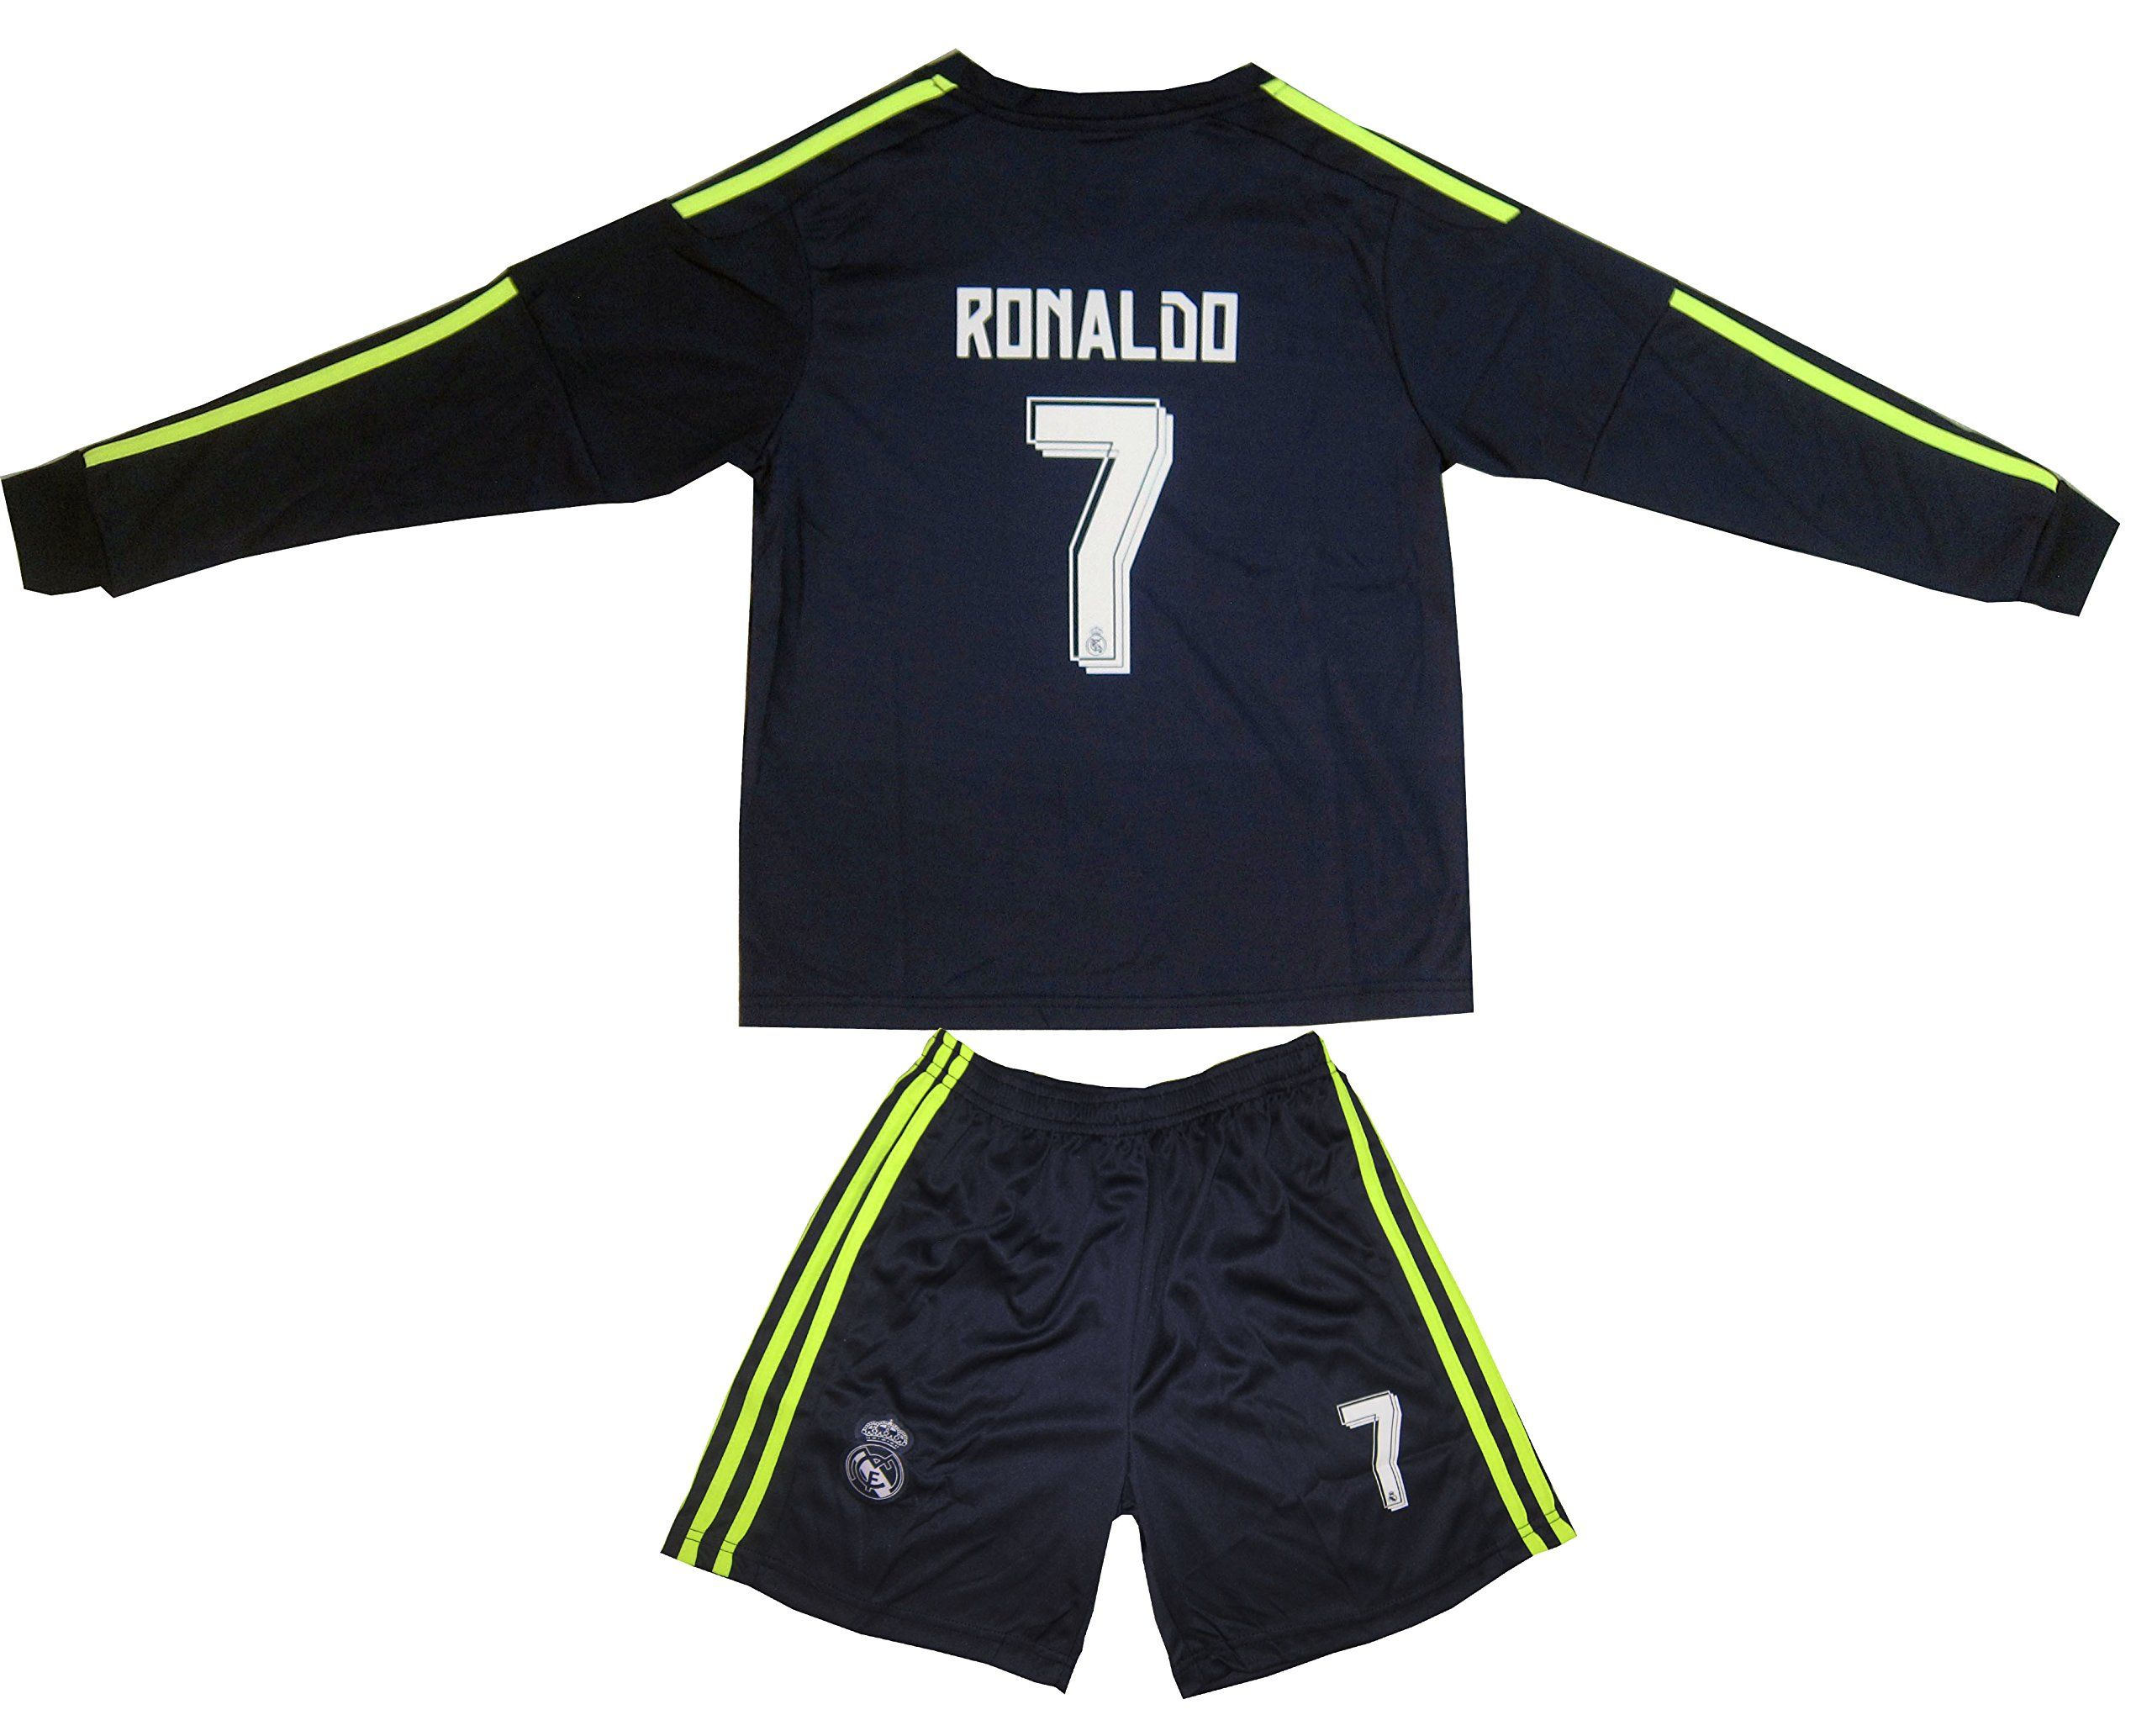 sale retailer 9c2c0 2e1c5 2015/2016 REAL MADRID #7 RONALDO KIDS AWAY NAVY LONG SLEEVE ...